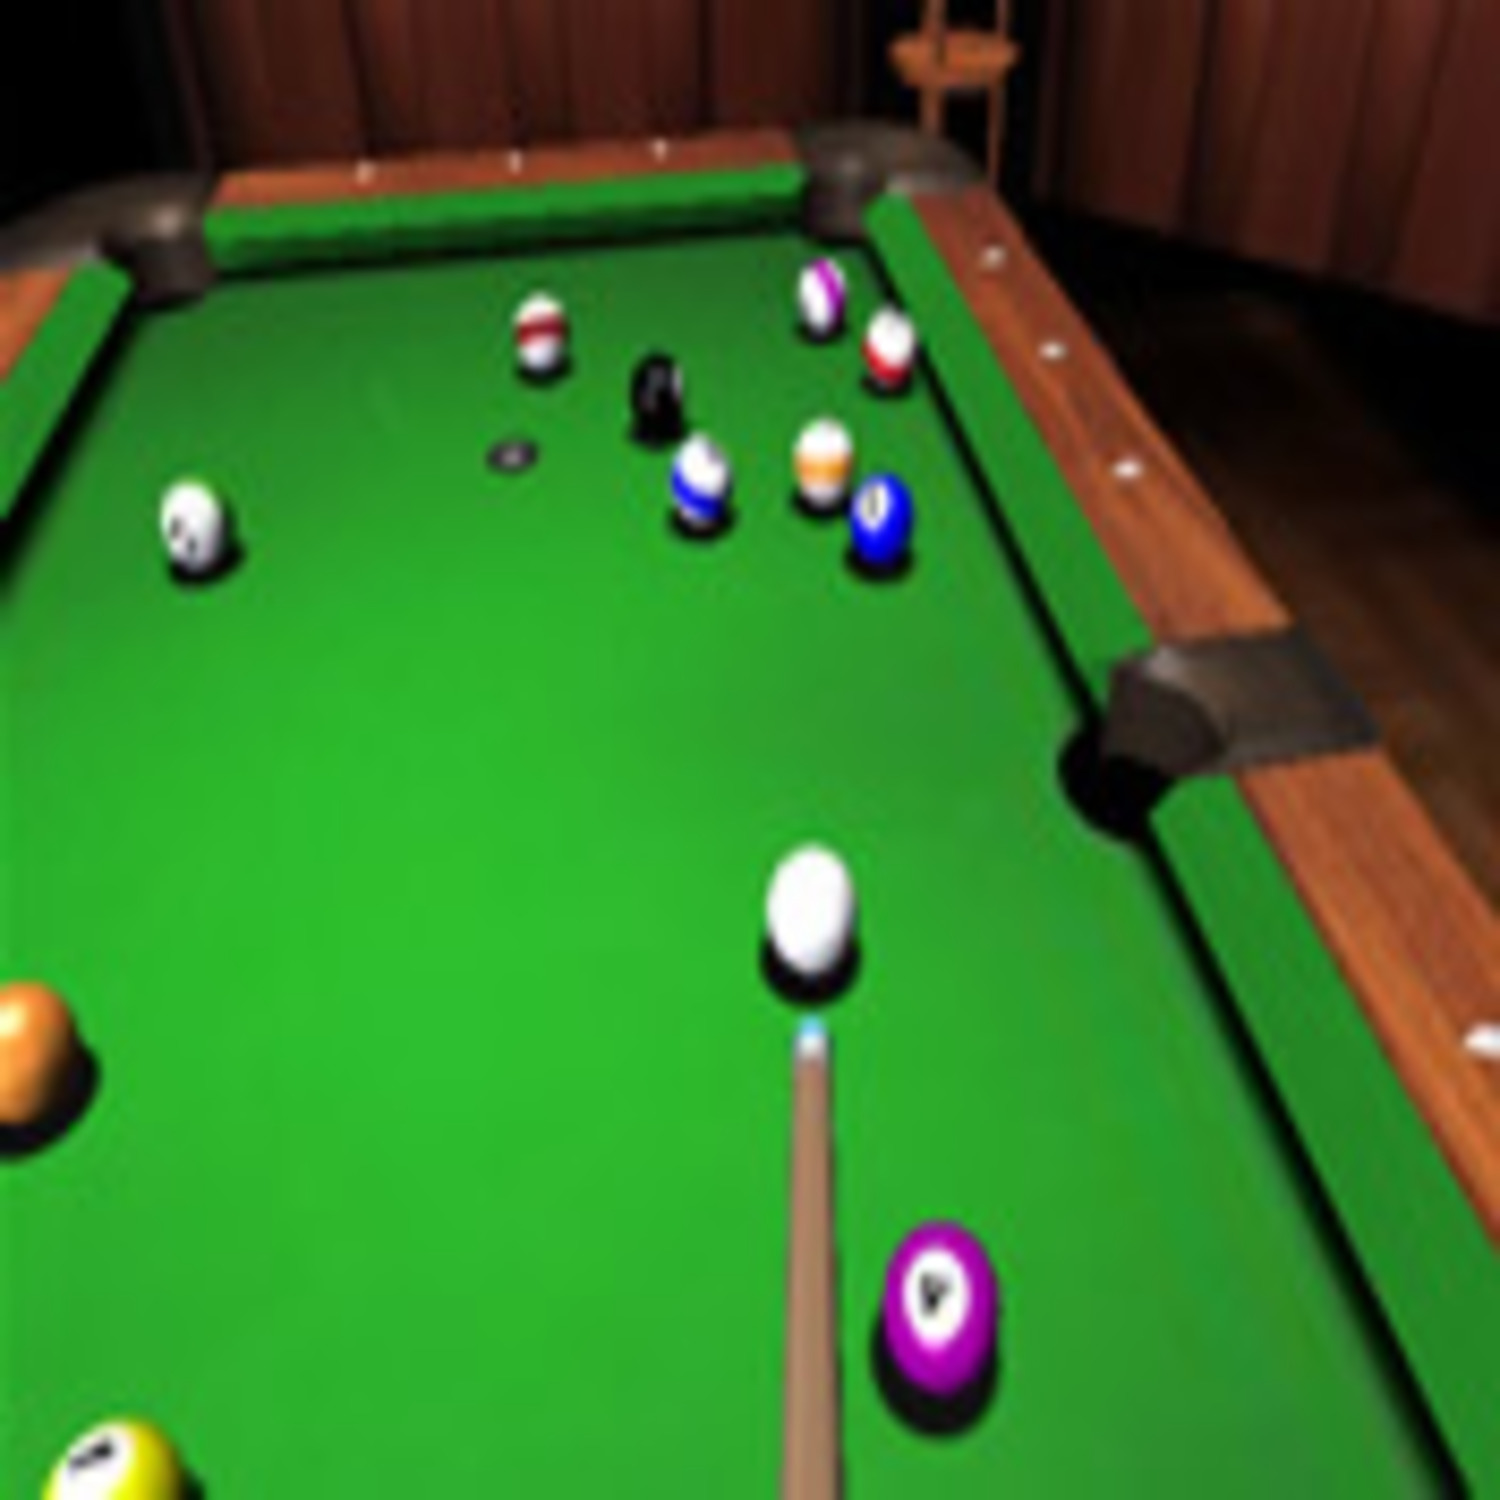 jeu de billard en 3d. Black Bedroom Furniture Sets. Home Design Ideas